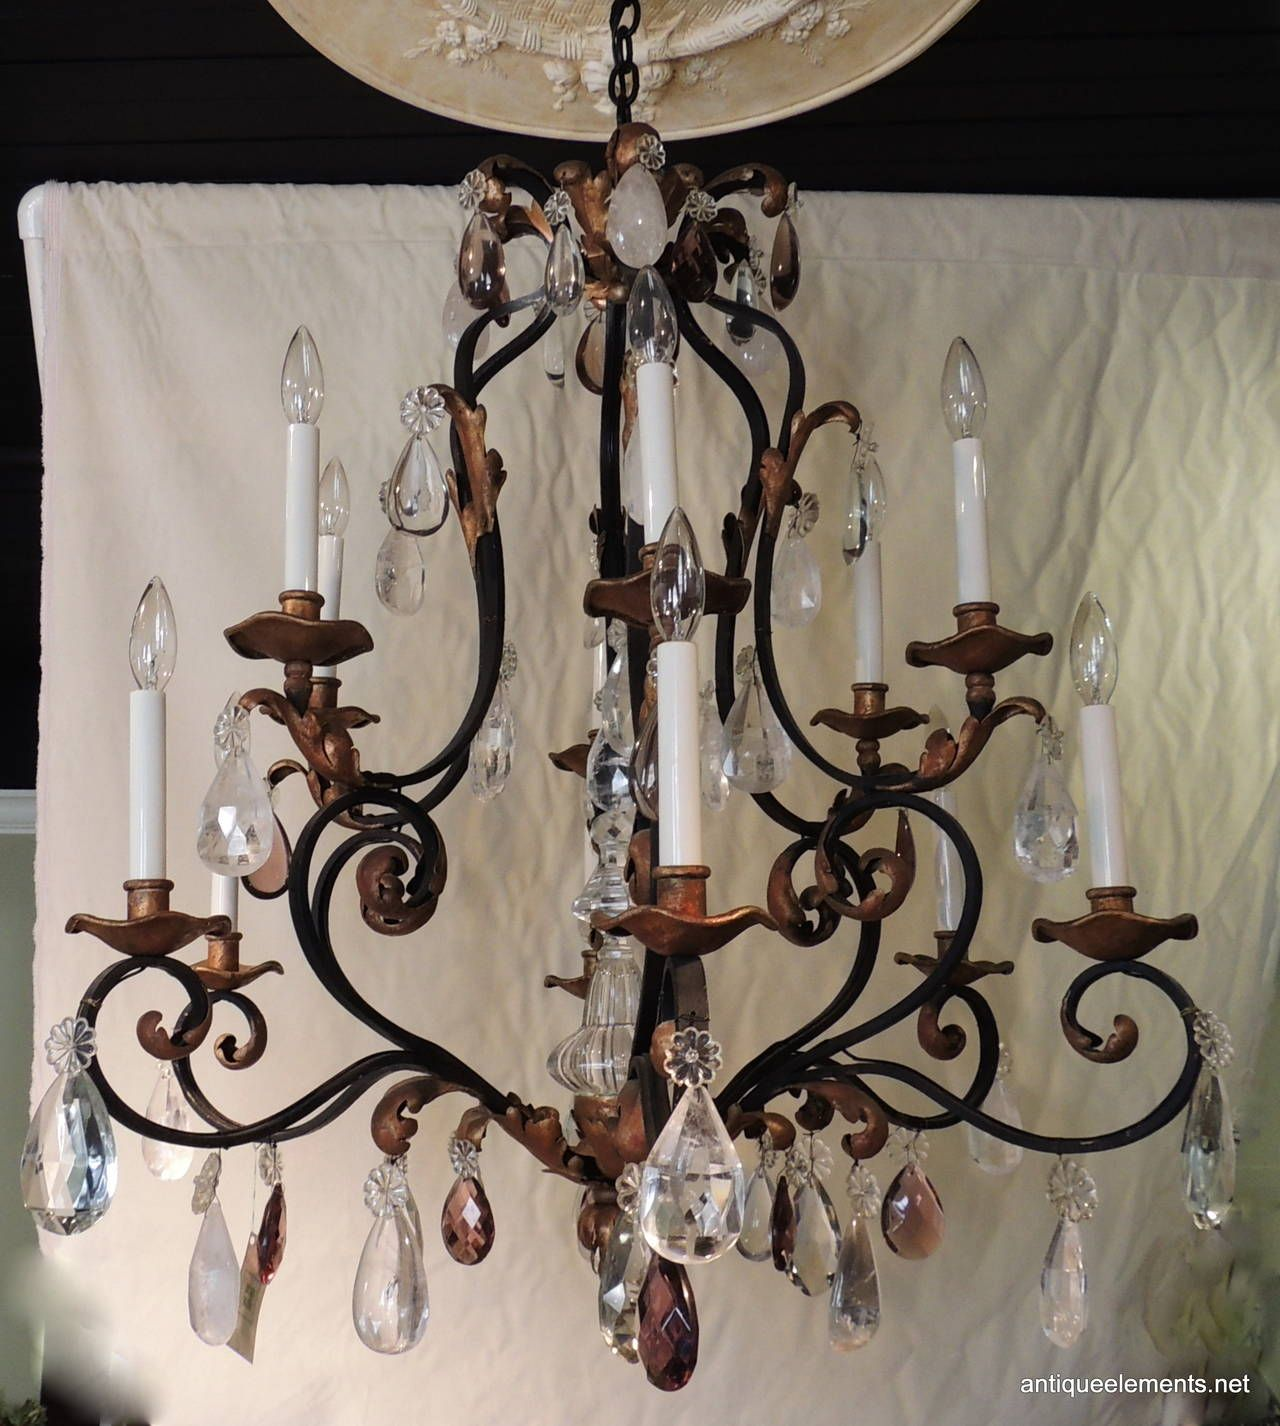 Clical Wrought Iron Gilt 12 Arm Chandelier With Amethyst And Rock Crystals From